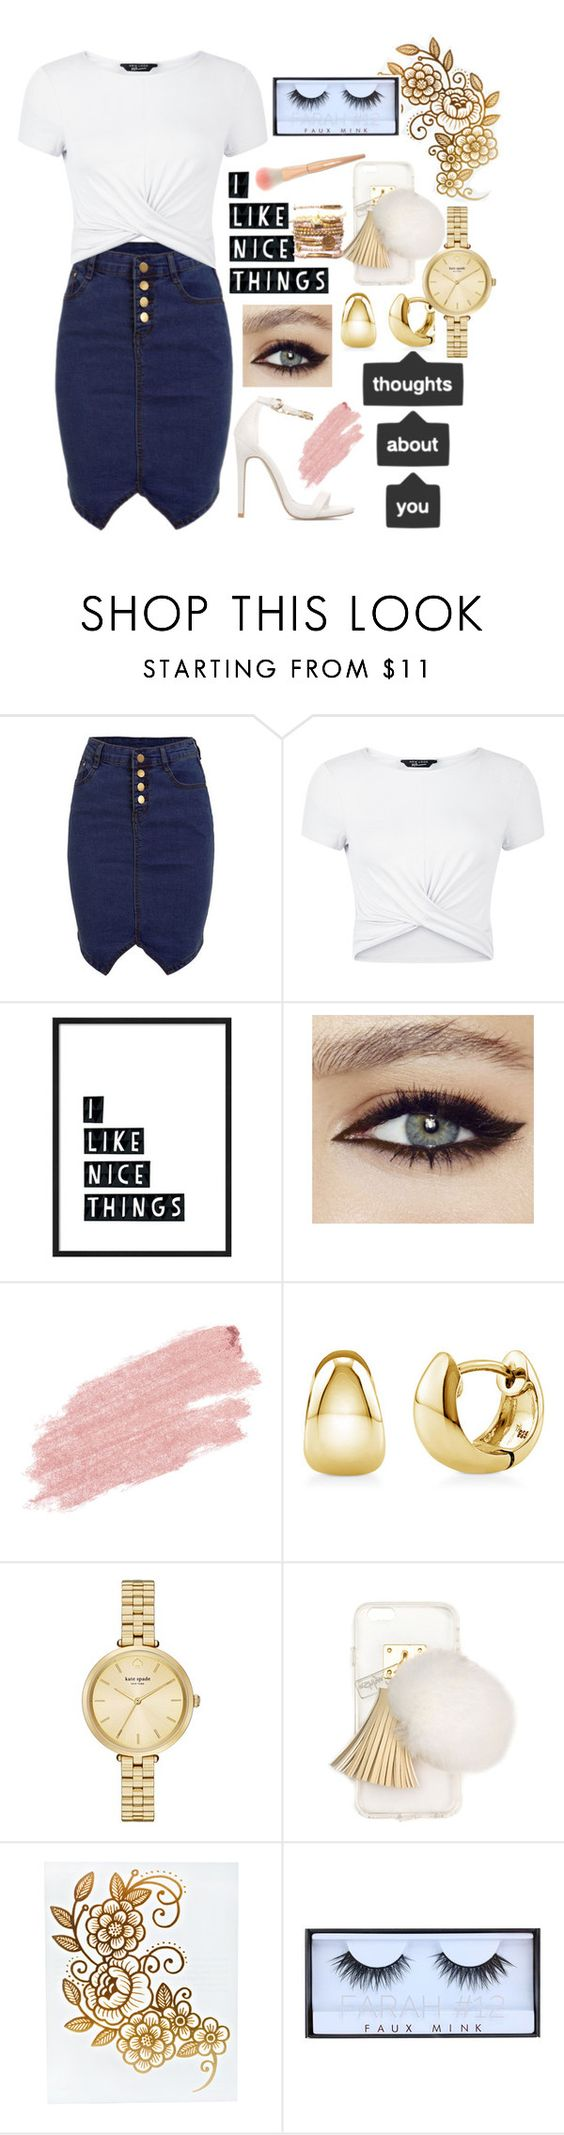 """""""Outfit136"""" by rbanks643 ❤ liked on Polyvore featuring New Look, Jane Iredale, BERRICLE, Kate Spade, Ashlyn'd and Huda Beauty"""